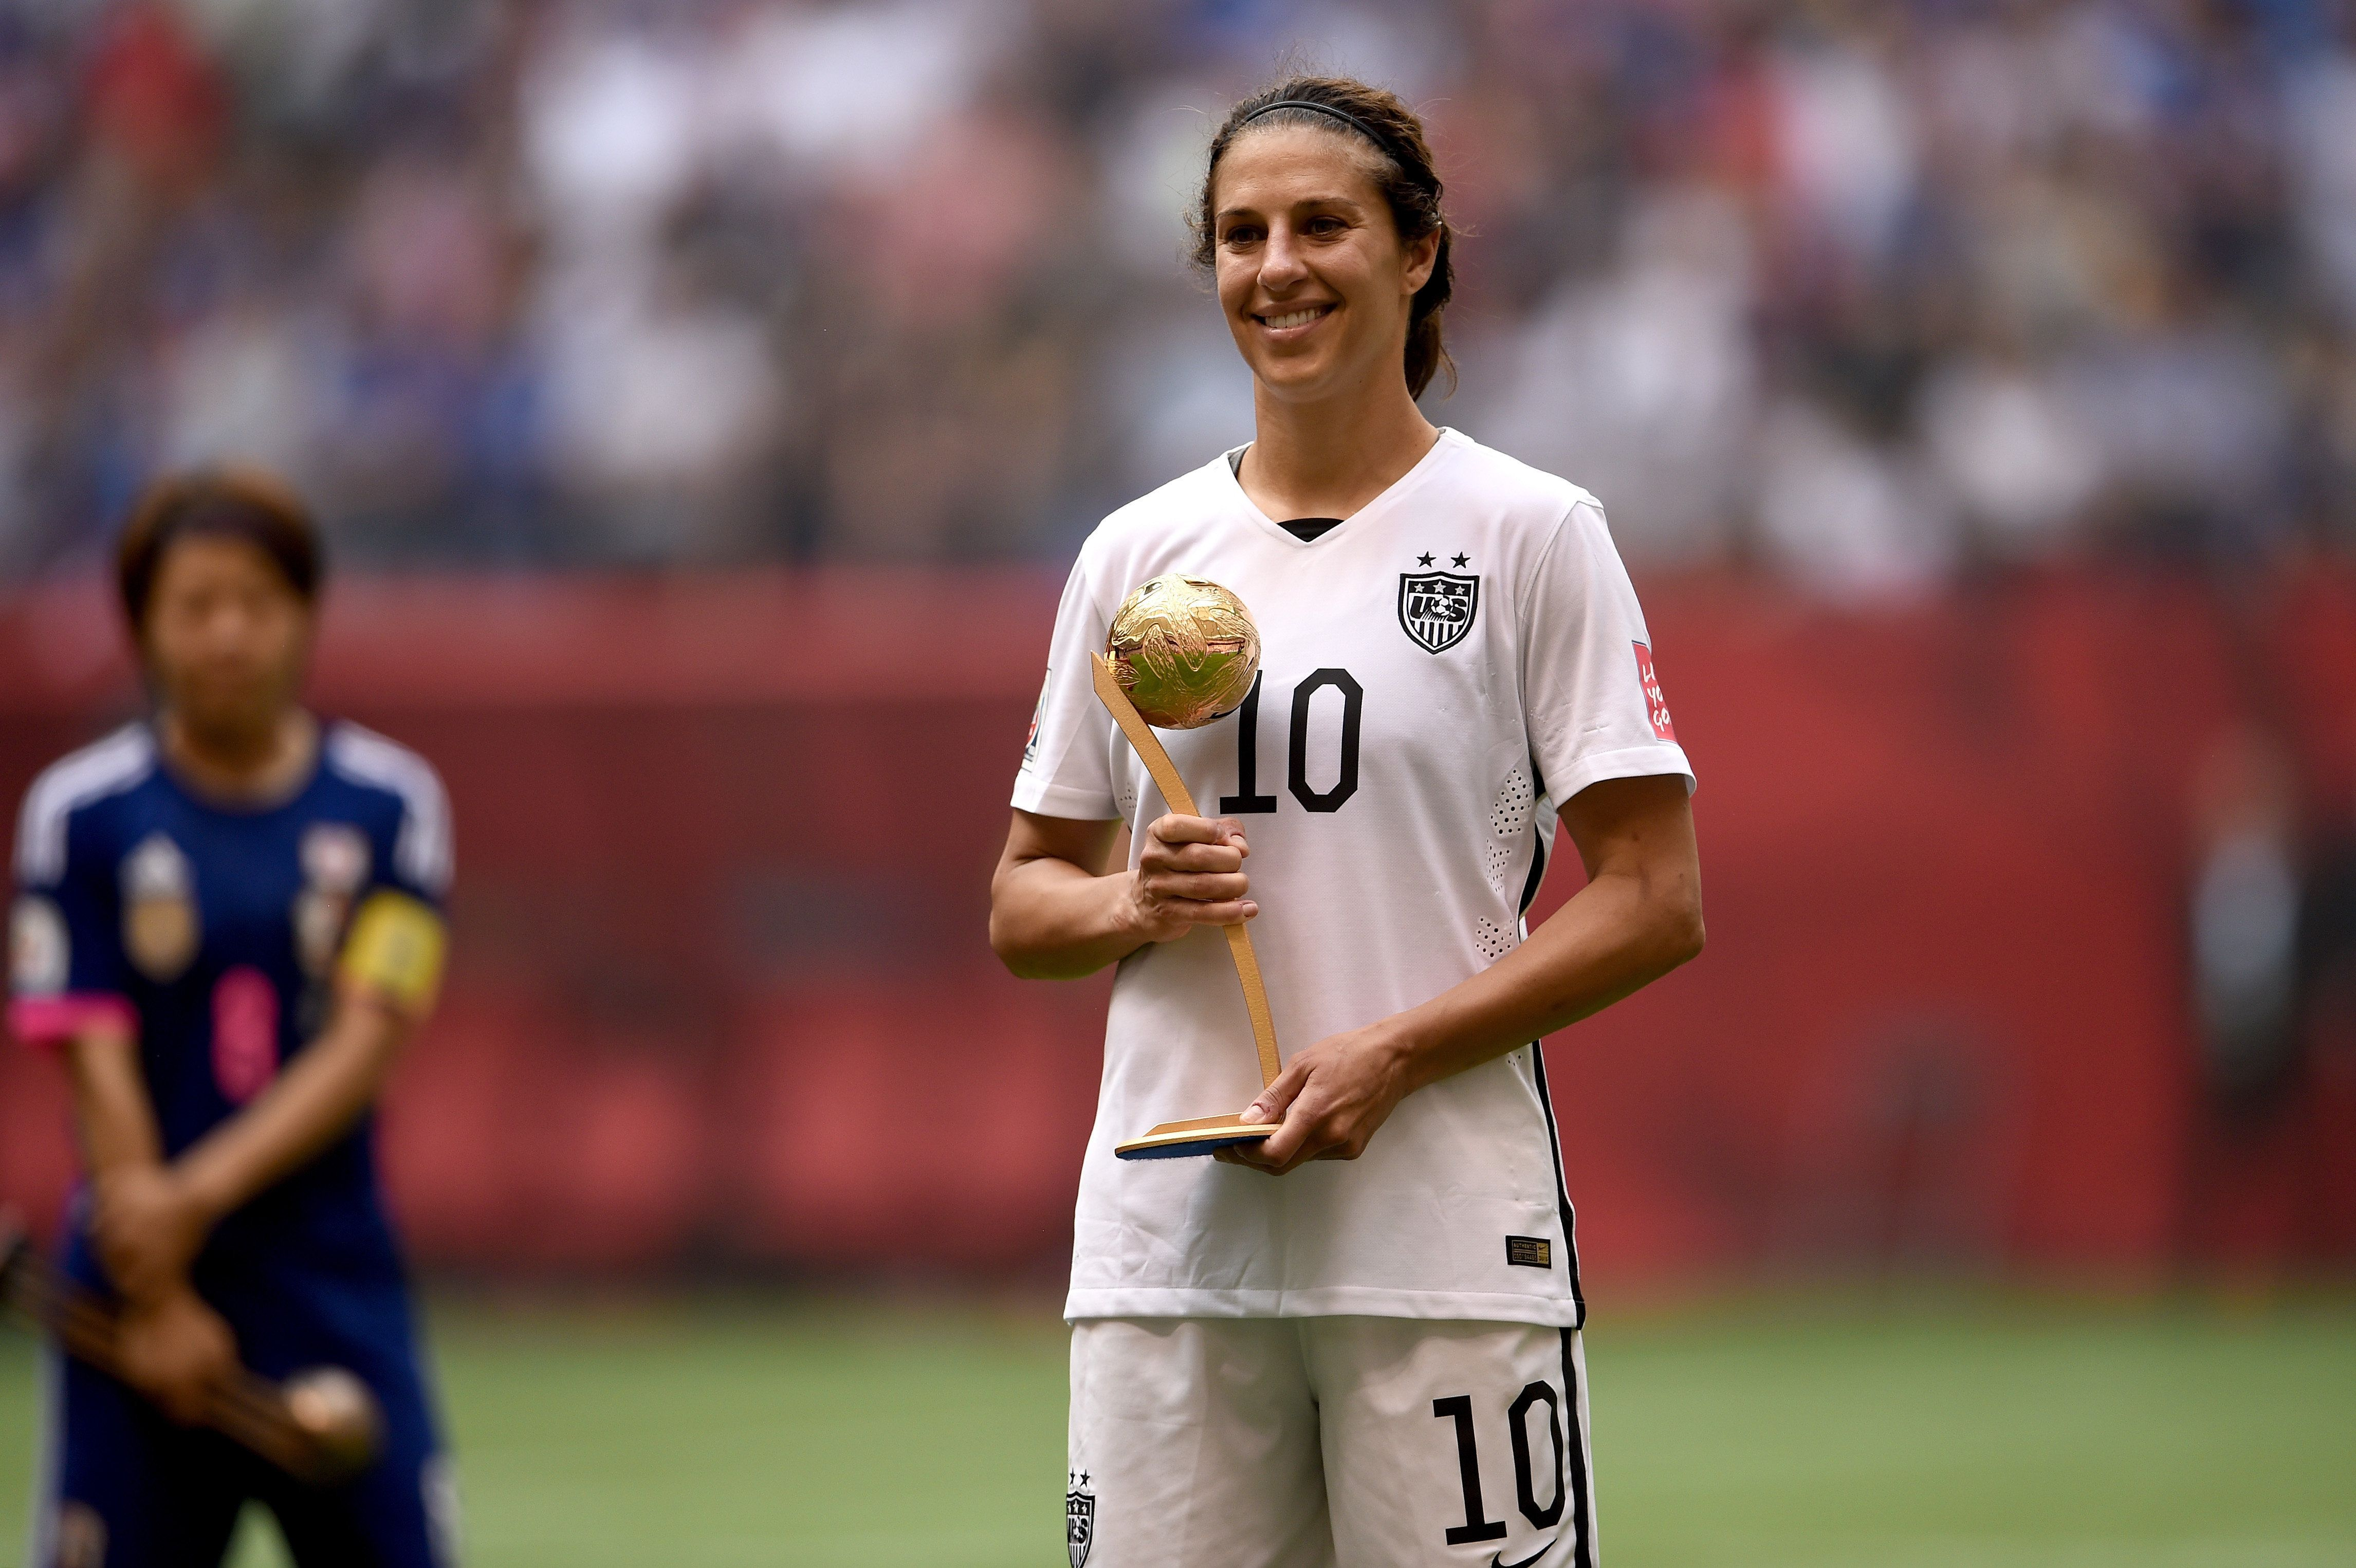 VANCOUVER, BC - JULY 05:  Carli Lloyd #10 of the United States poses after winning the Golden Ball during the FIFA Women's World Cup Canada 2015 Final at BC Place Stadium on July 5, 2015 in Vancouver, Canada.  (Photo by Dennis Grombkowski/Getty Images)